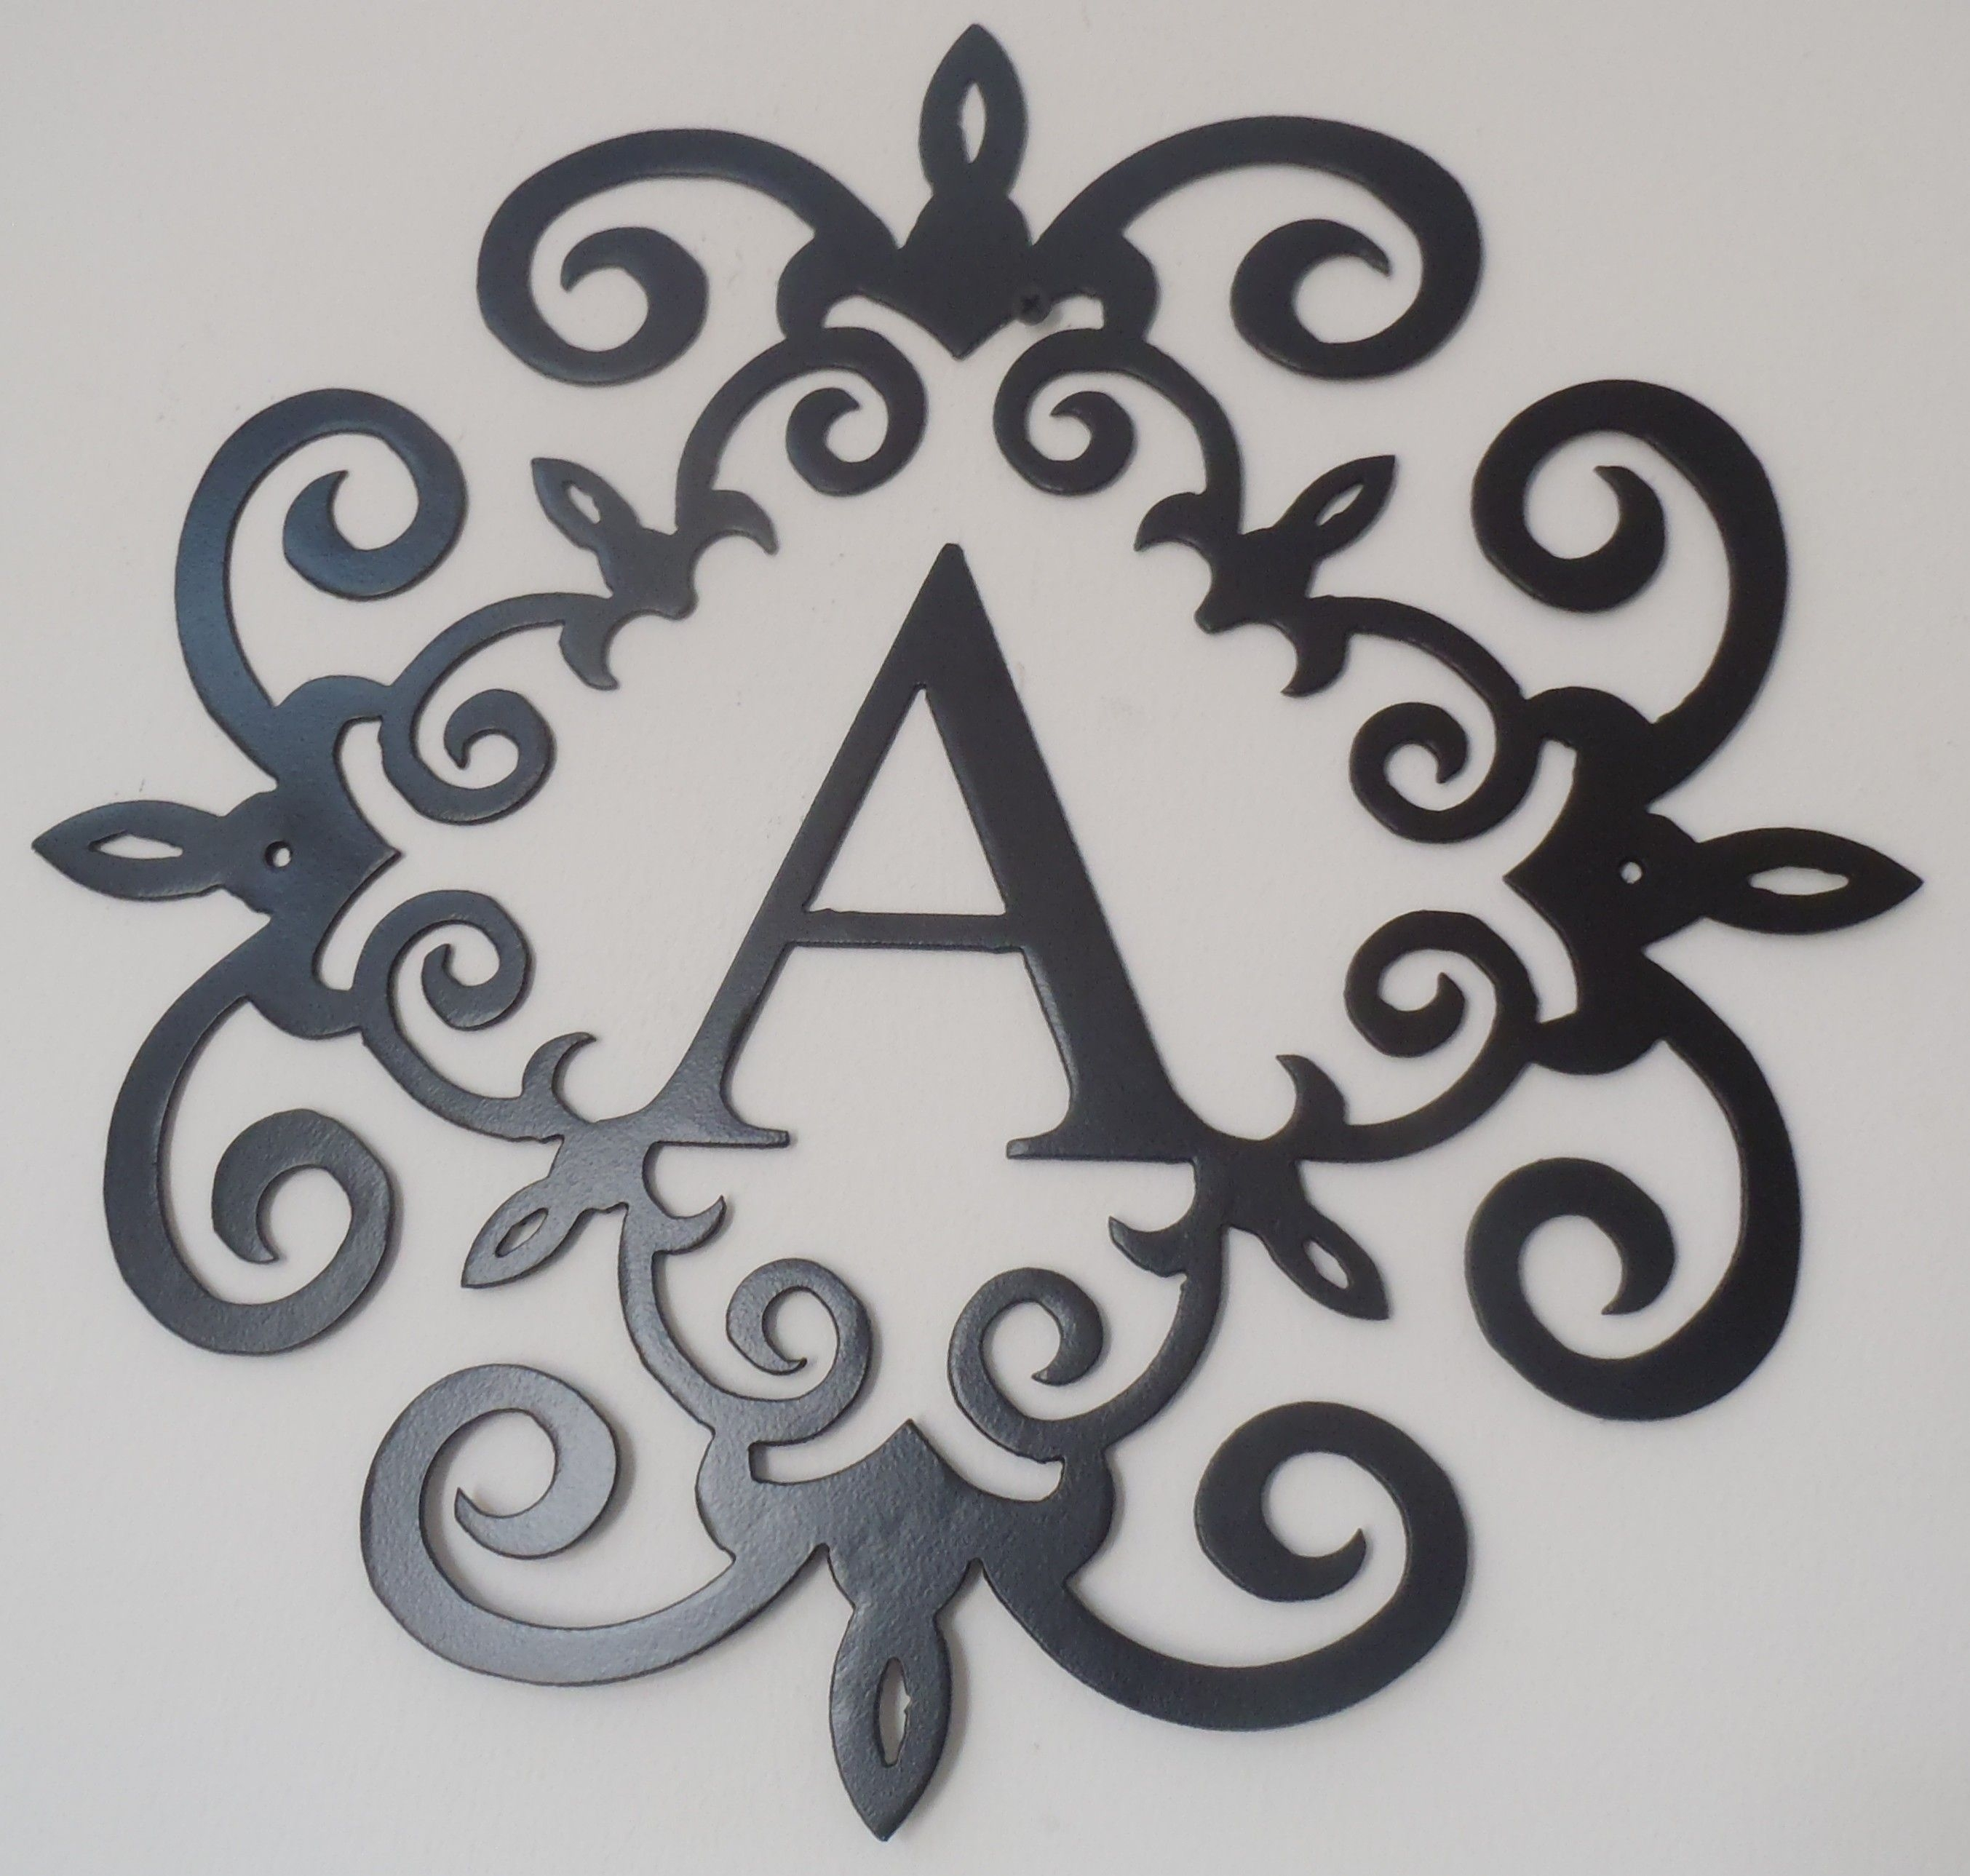 Family Initial, Monogram Inside A Metal Scroll With A Letter, Wall Intended For 2018 Metal Letter Wall Art (View 4 of 20)